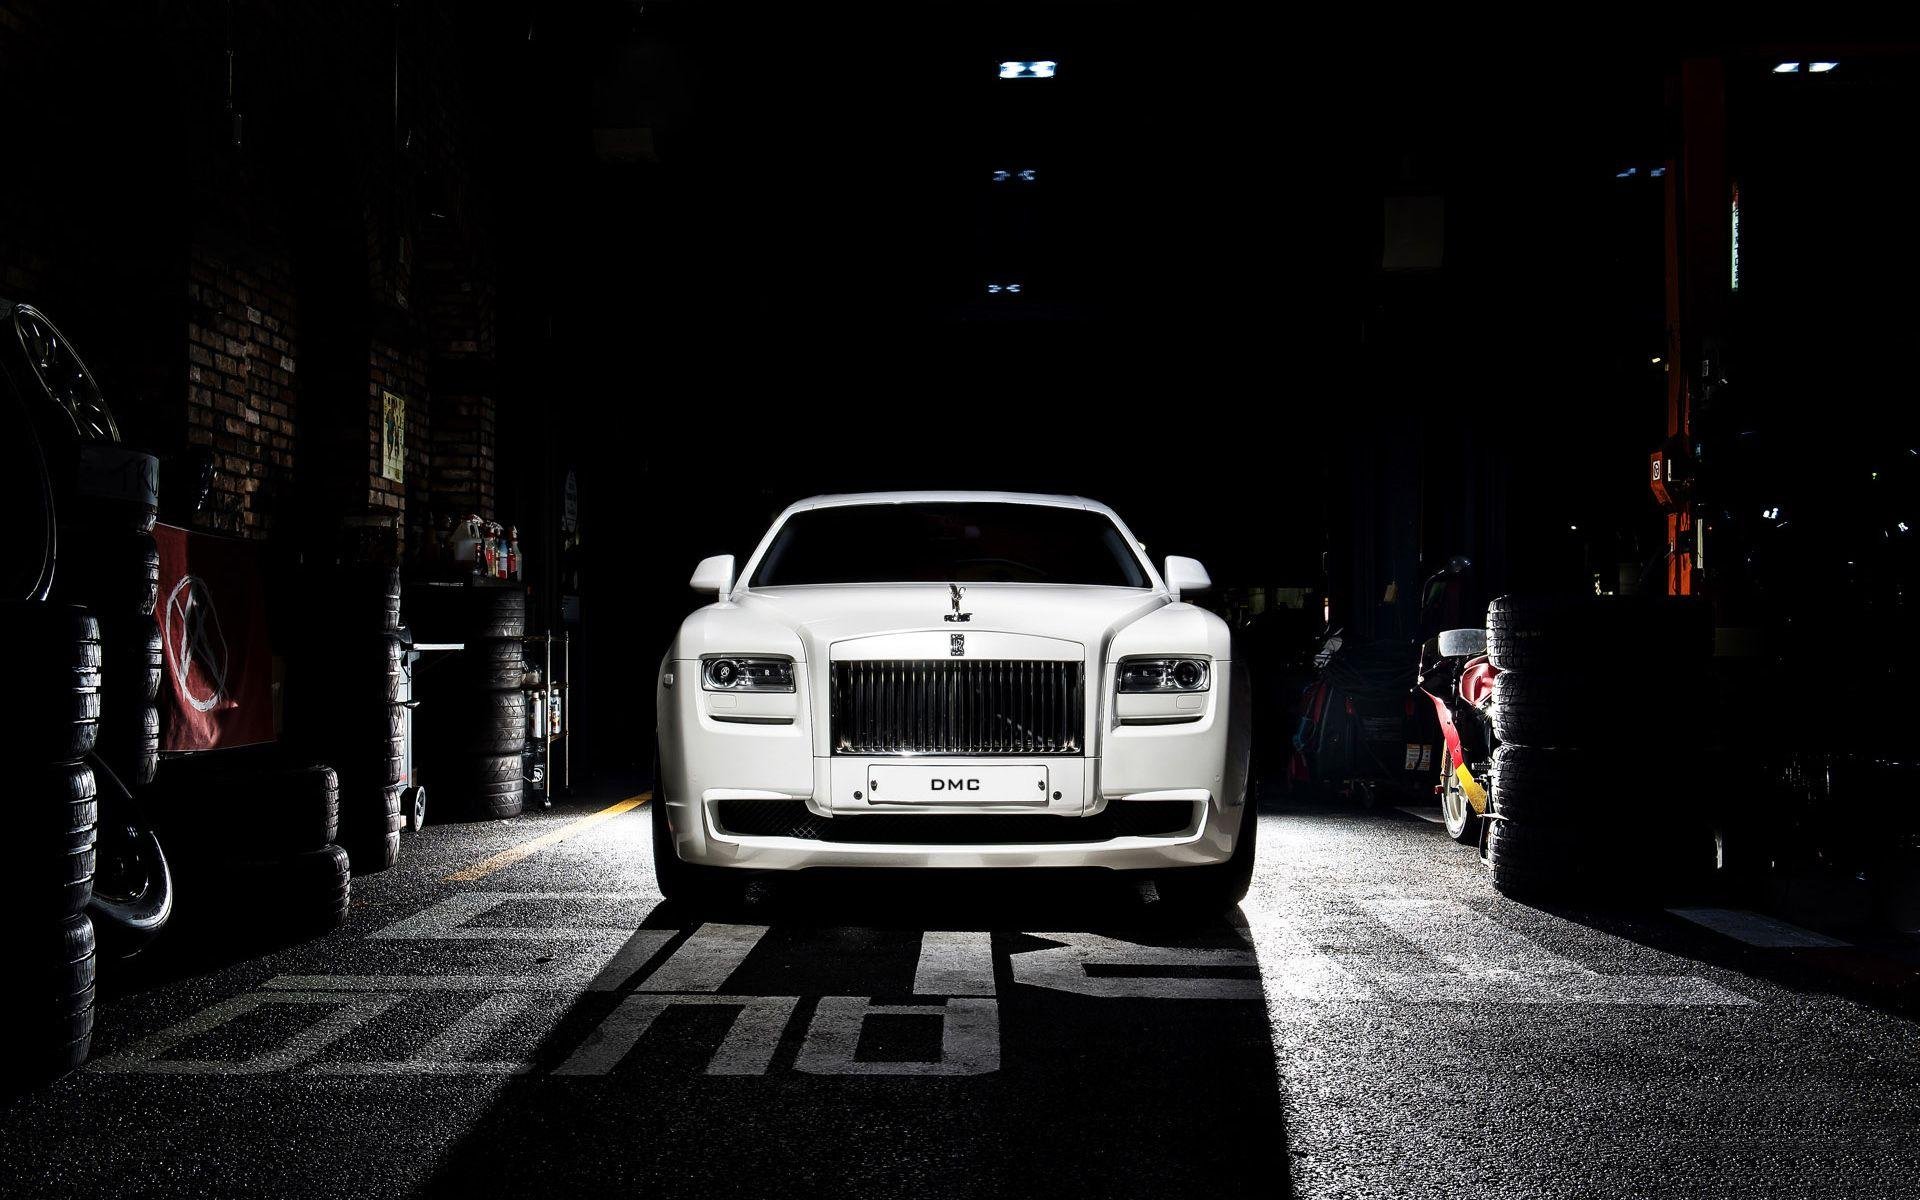 Rolls Royce Phantom Phone Wallpaper Hd Pics Of Smartphone Dmc Ghost ...